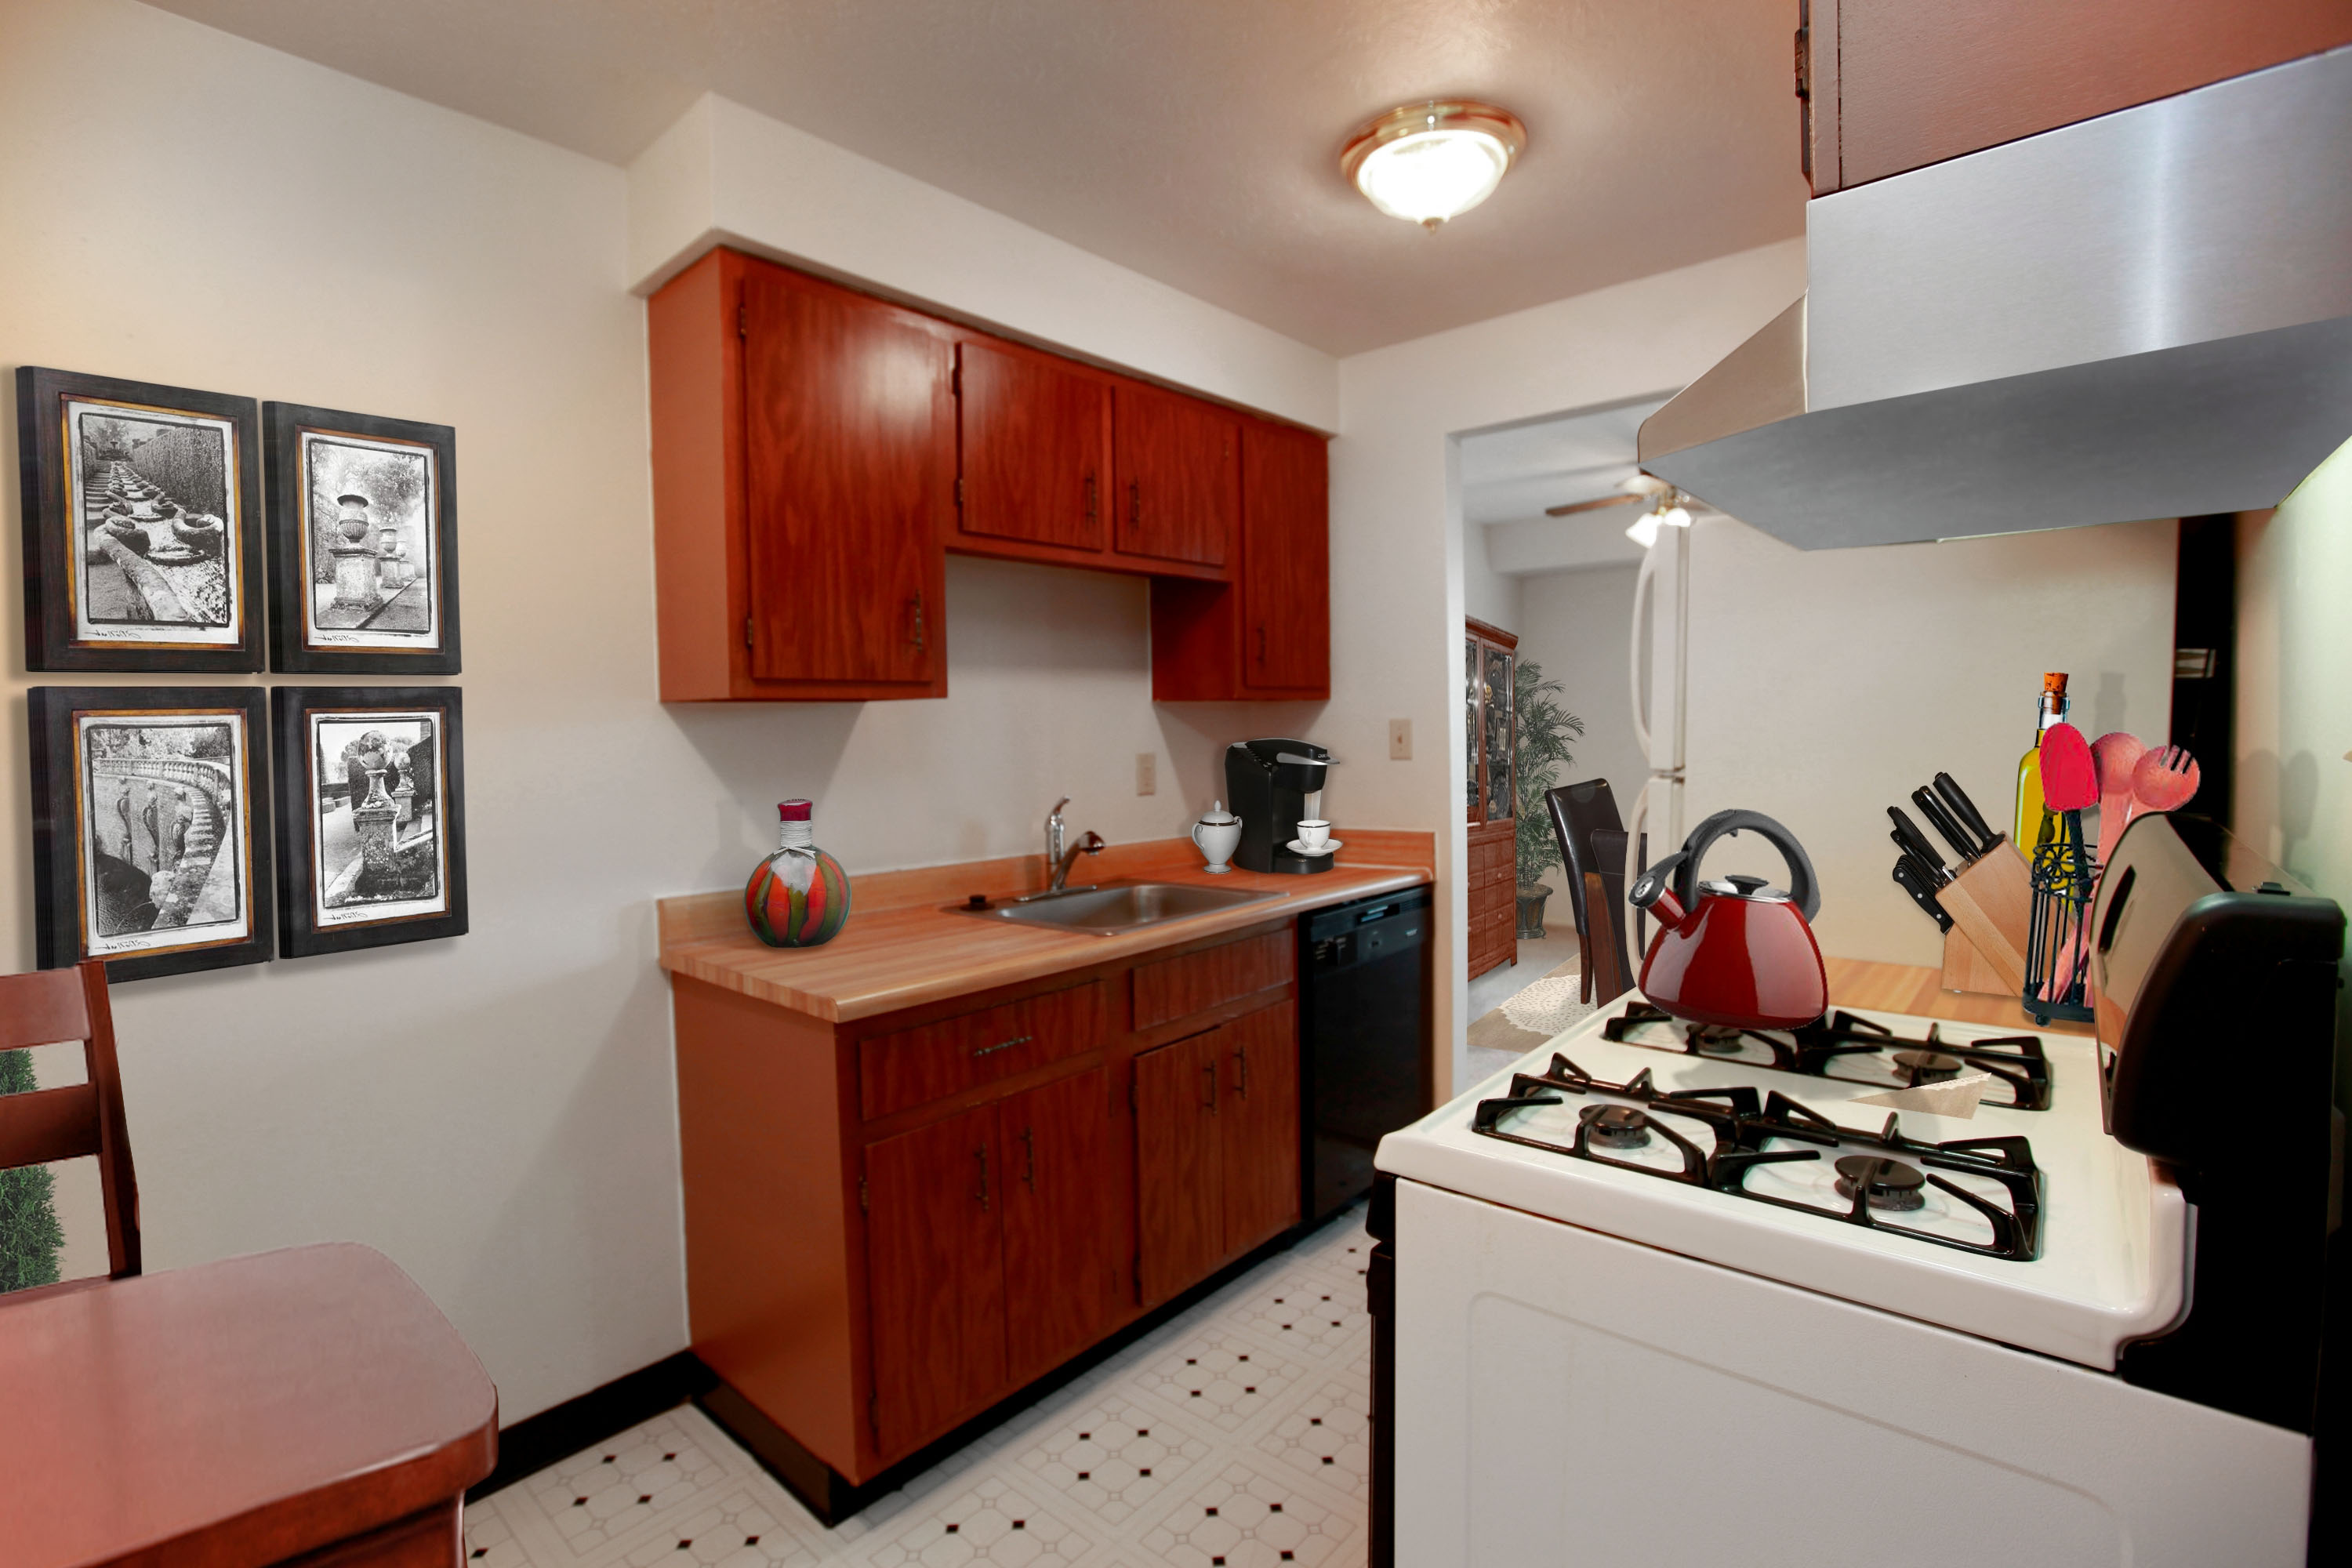 2A Eat-in Kitchen at the Greenridge on Euclid Apartments in Euclid, OH